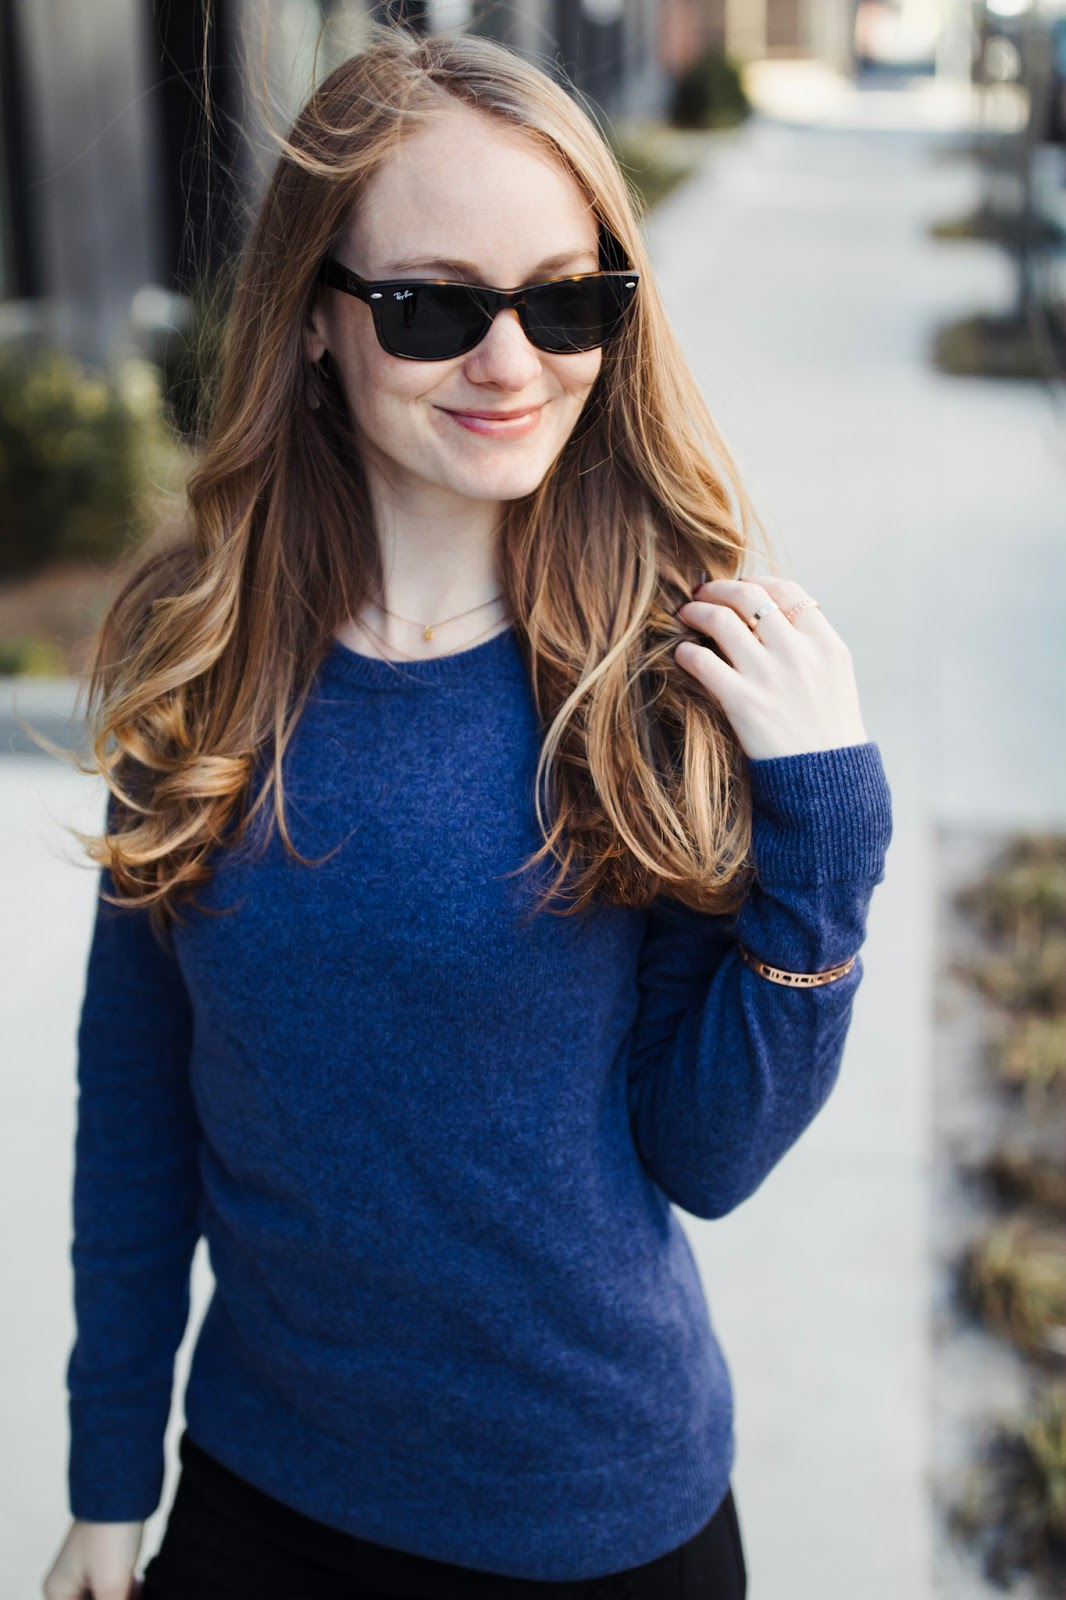 how-to-dress-for-style-and-comfort-blue-cashmere-sweater